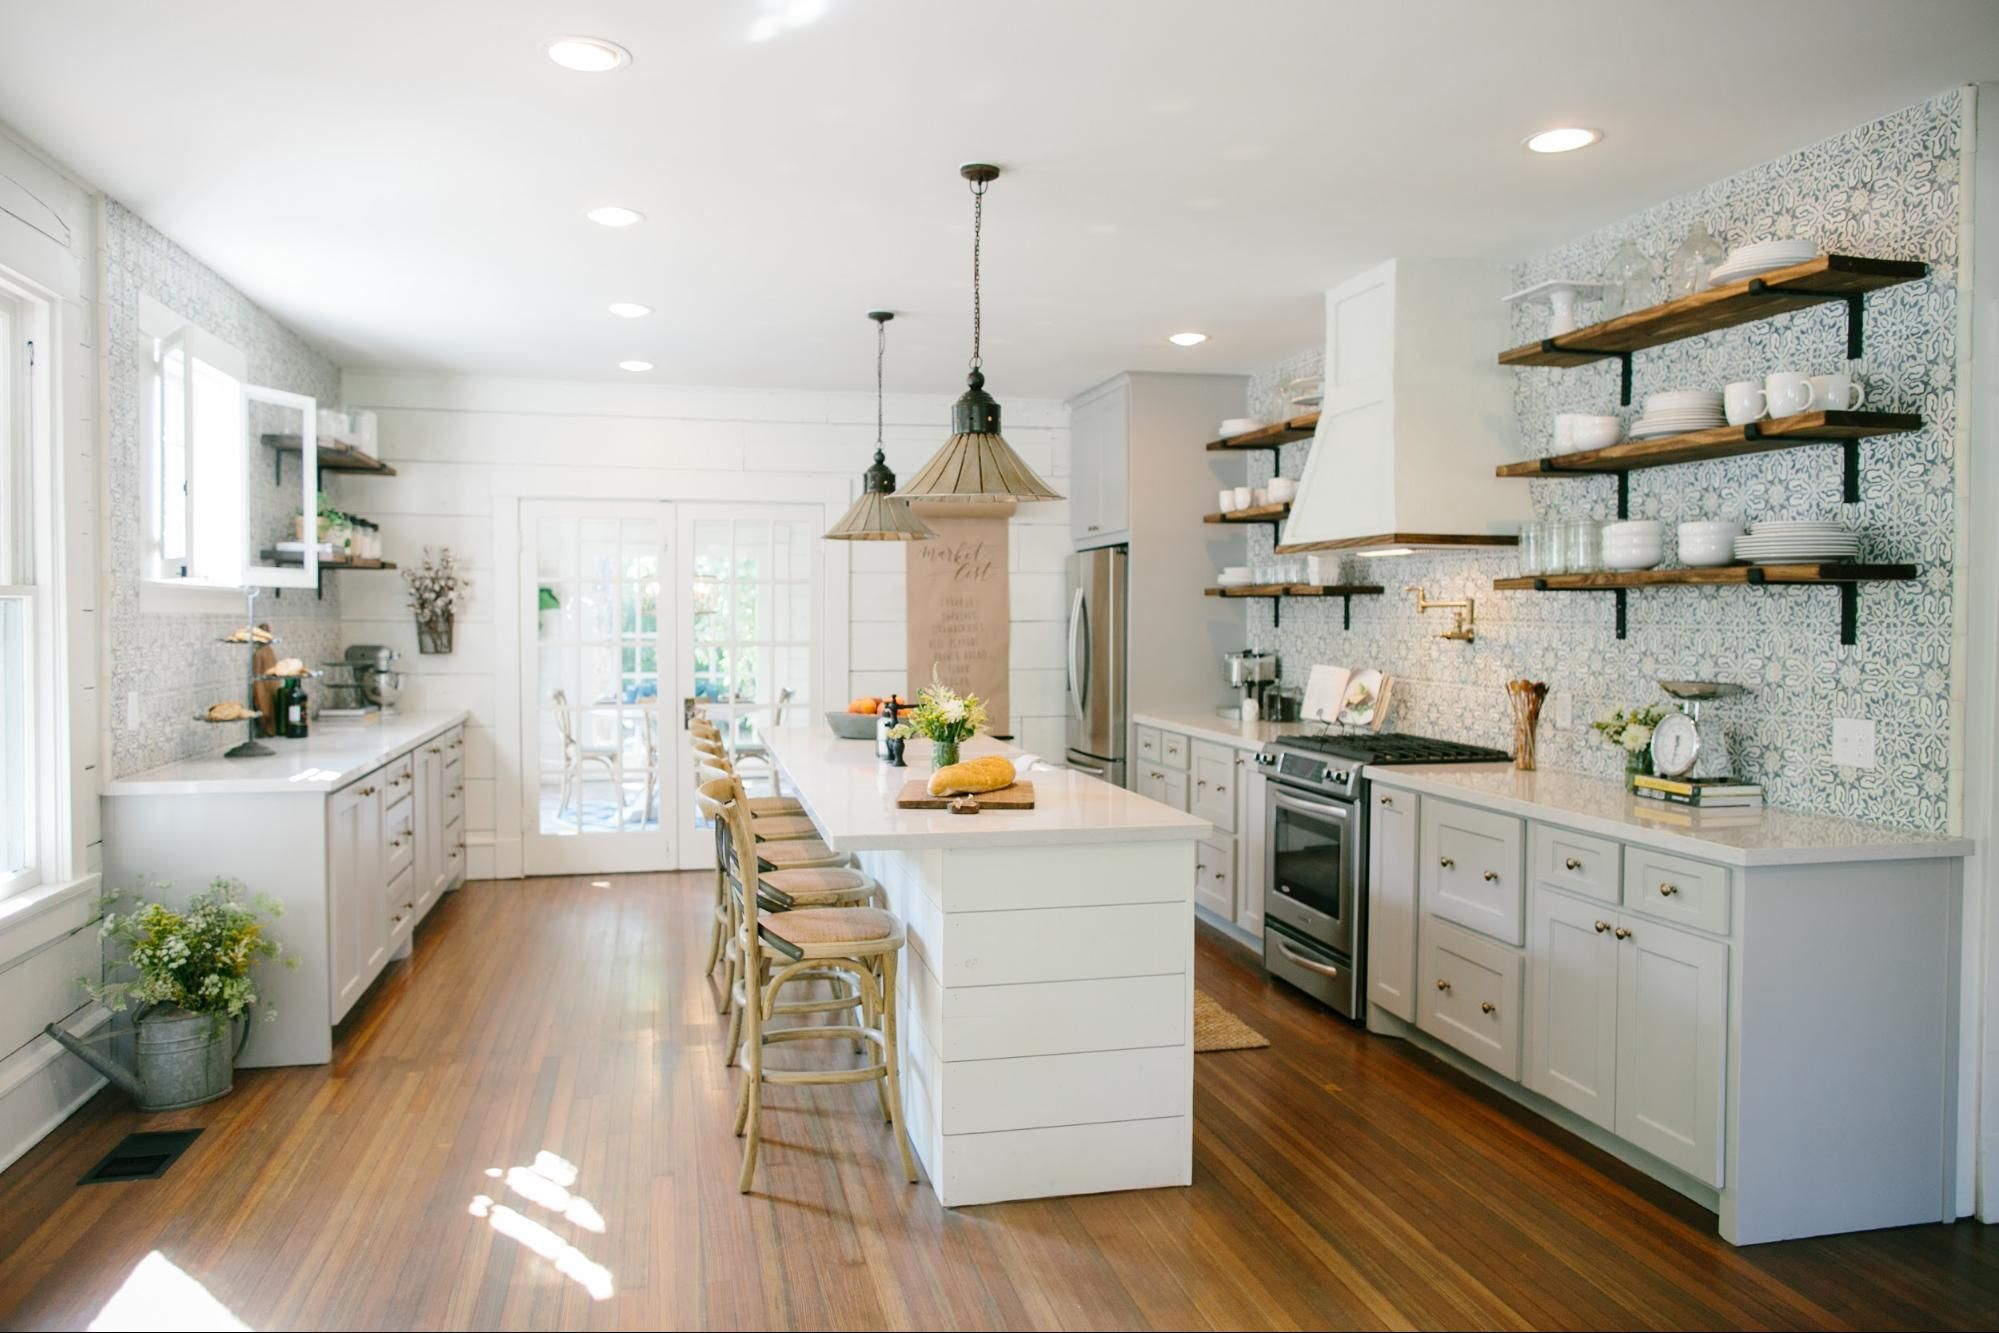 Fixer upper home kitchen - Fixer Upper Photos Of Kitchens 17 Best Images About Blue And White Gray Kitchens On